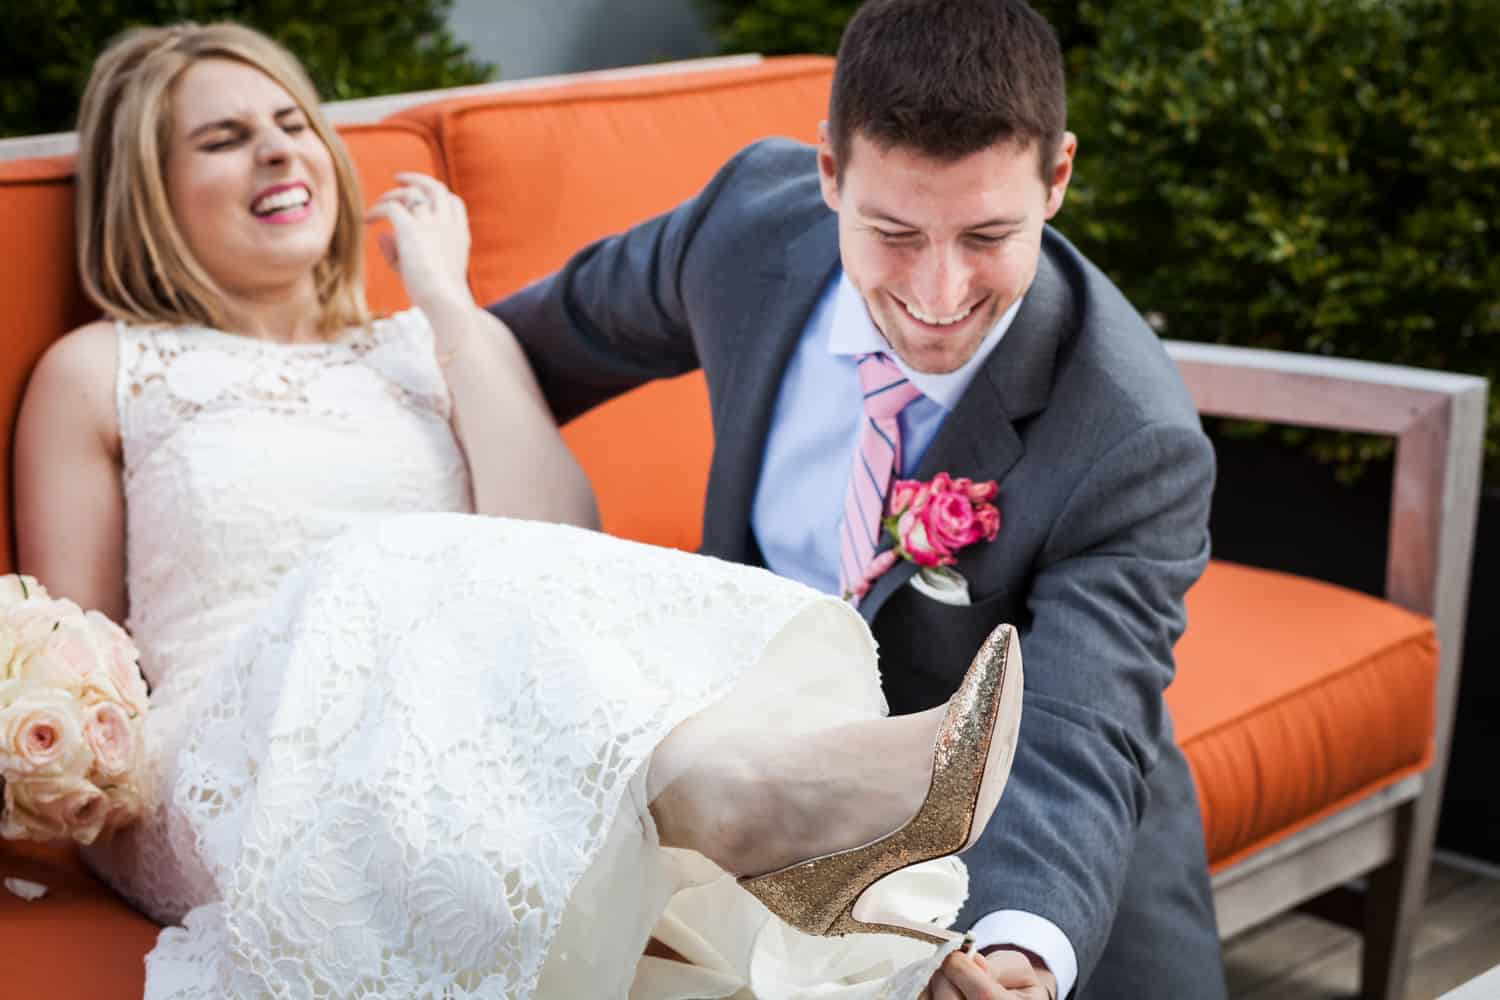 Groom getting train of bride's dress unhooked from her heel